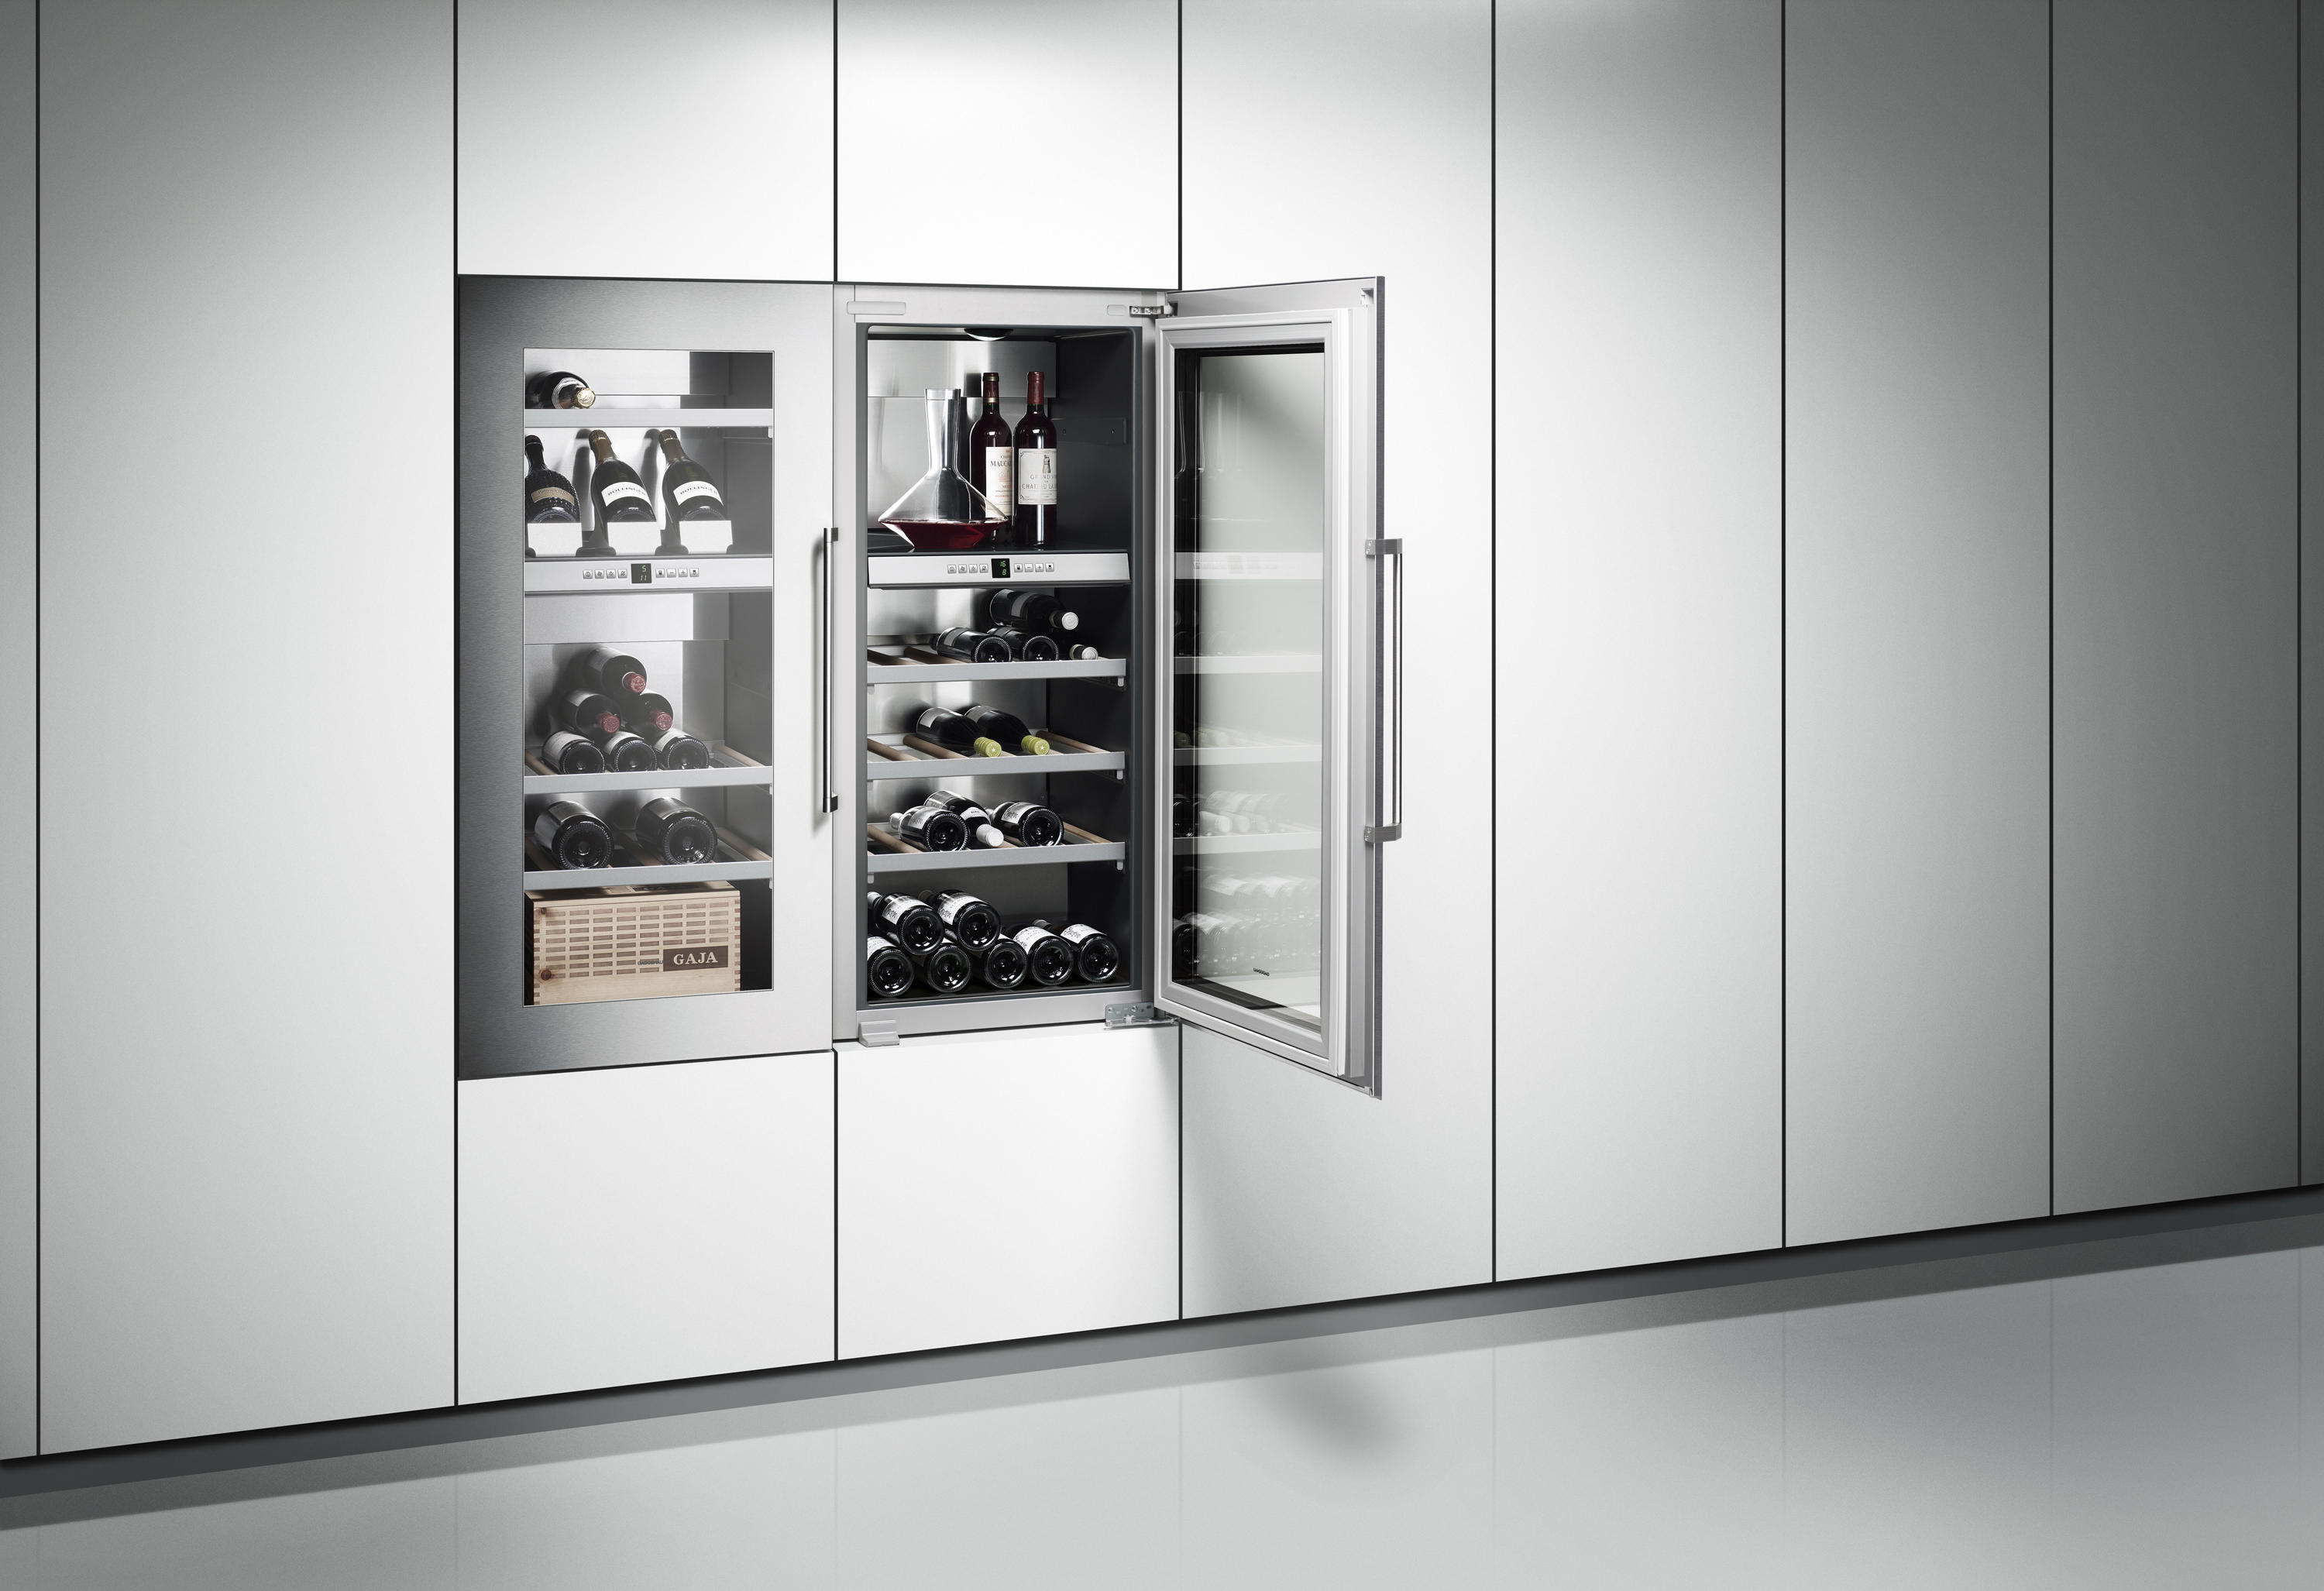 vario wine climate cabinet 400 series rw 464 rw 414 refrigerators from gaggenau architonic. Black Bedroom Furniture Sets. Home Design Ideas